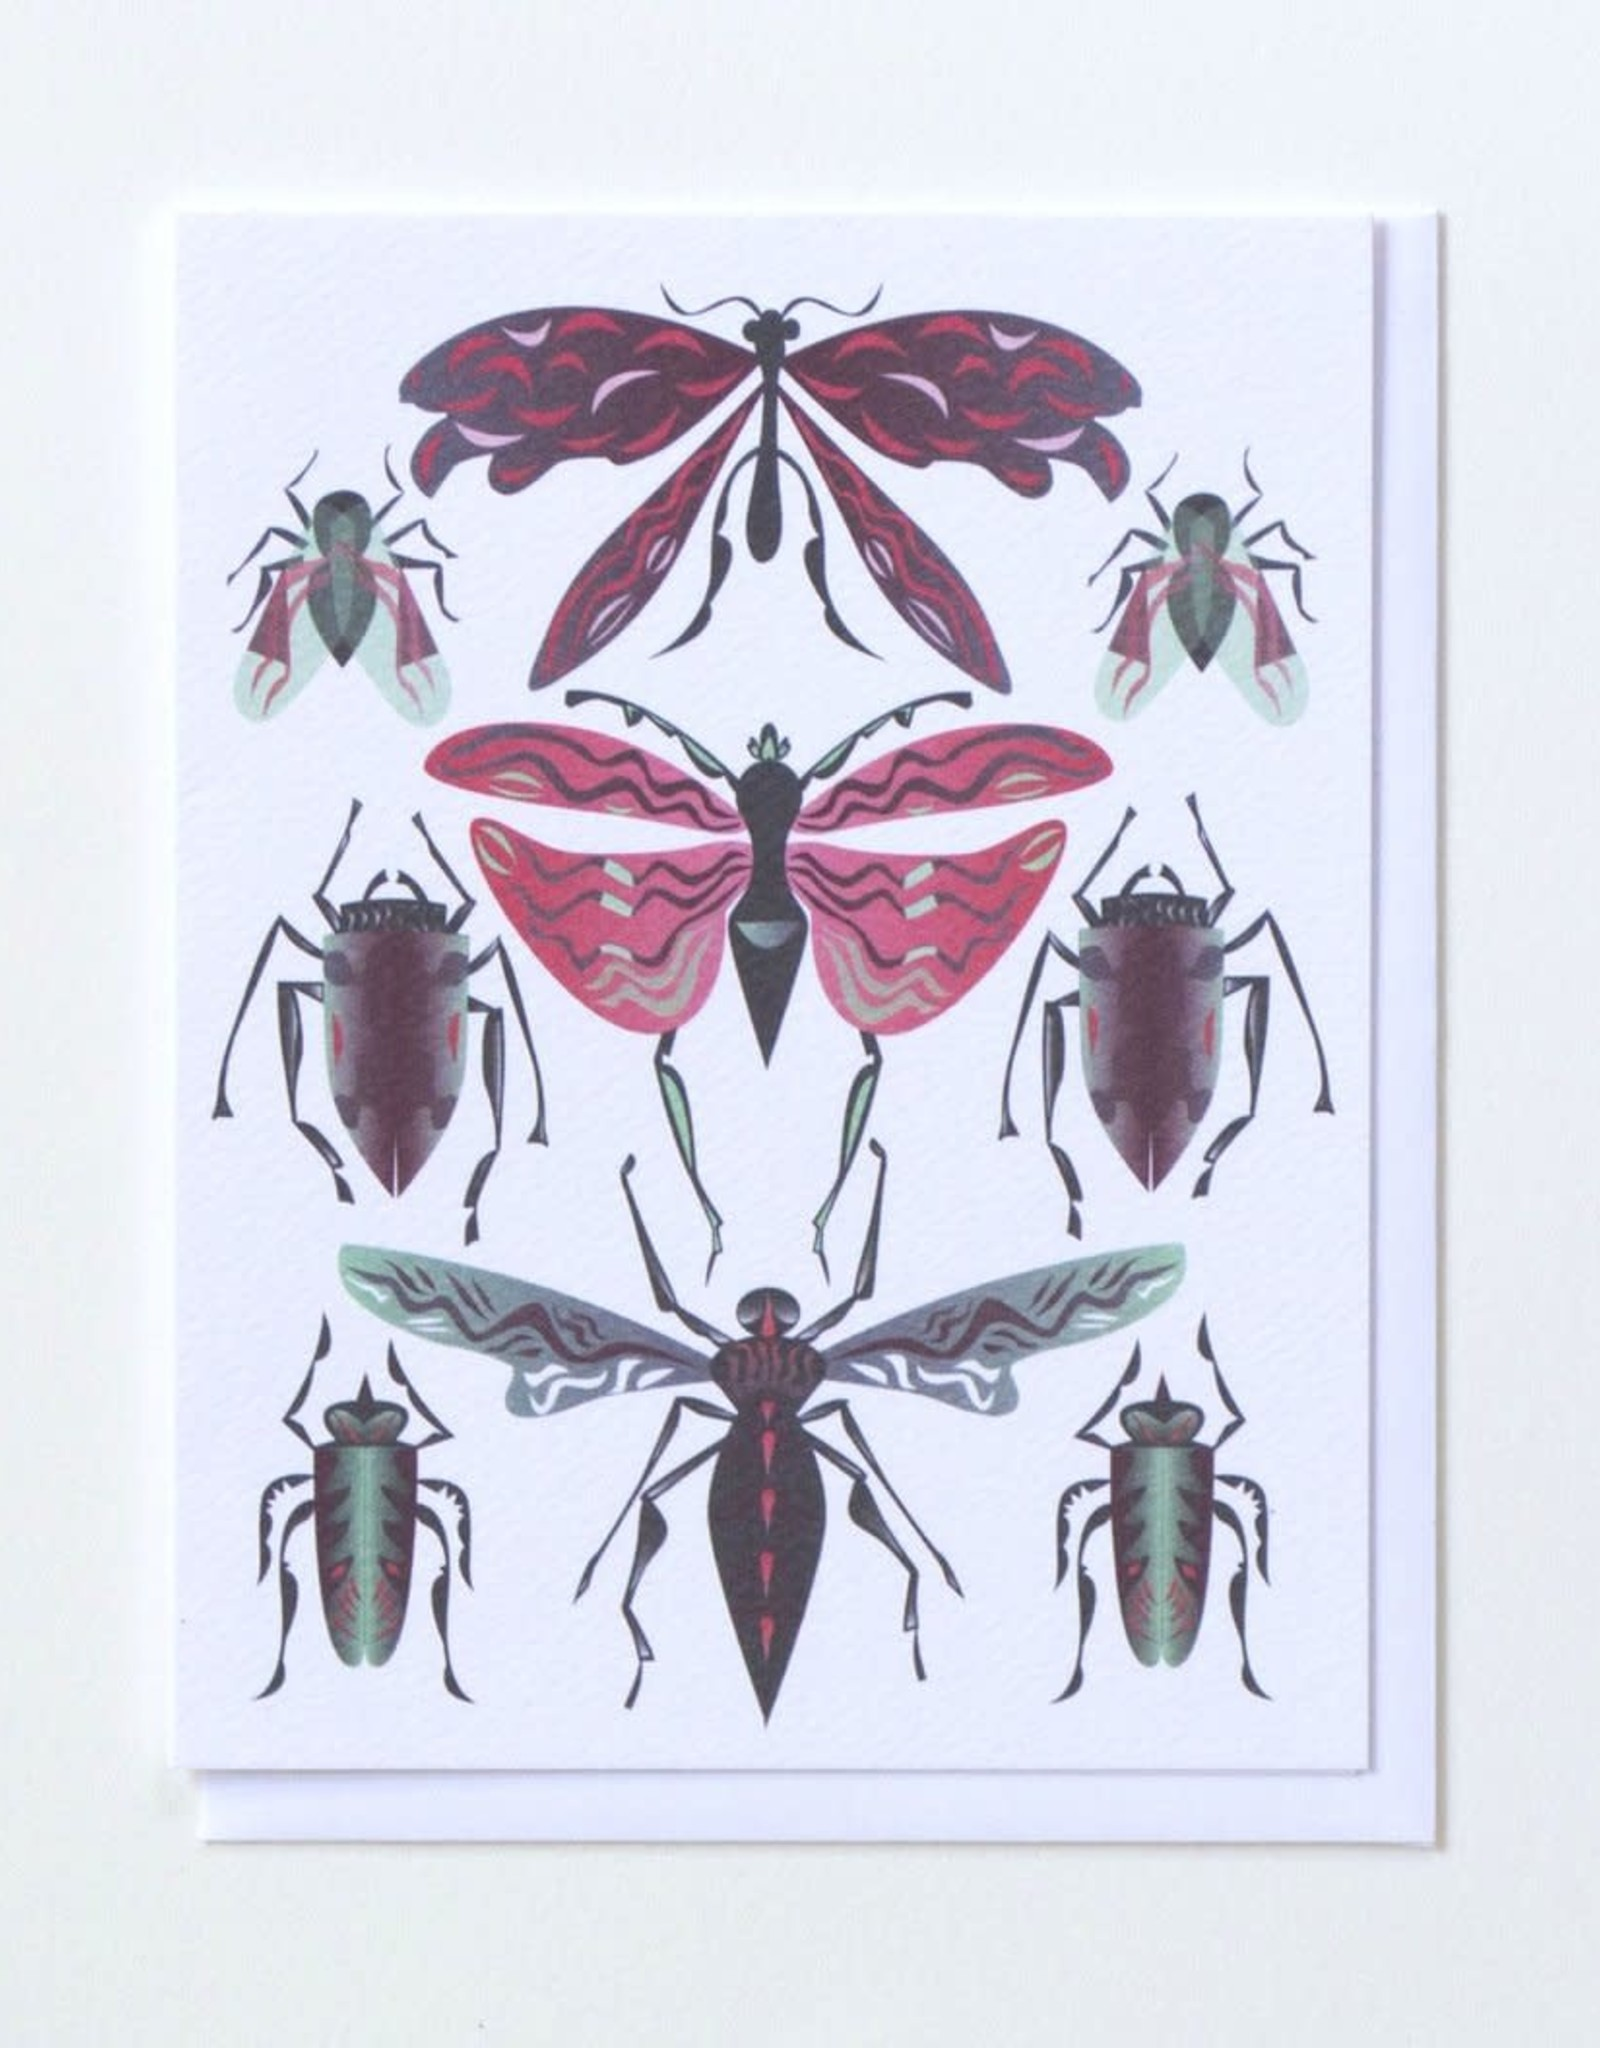 Banquet Atelier & Workshop Insects - Note Card